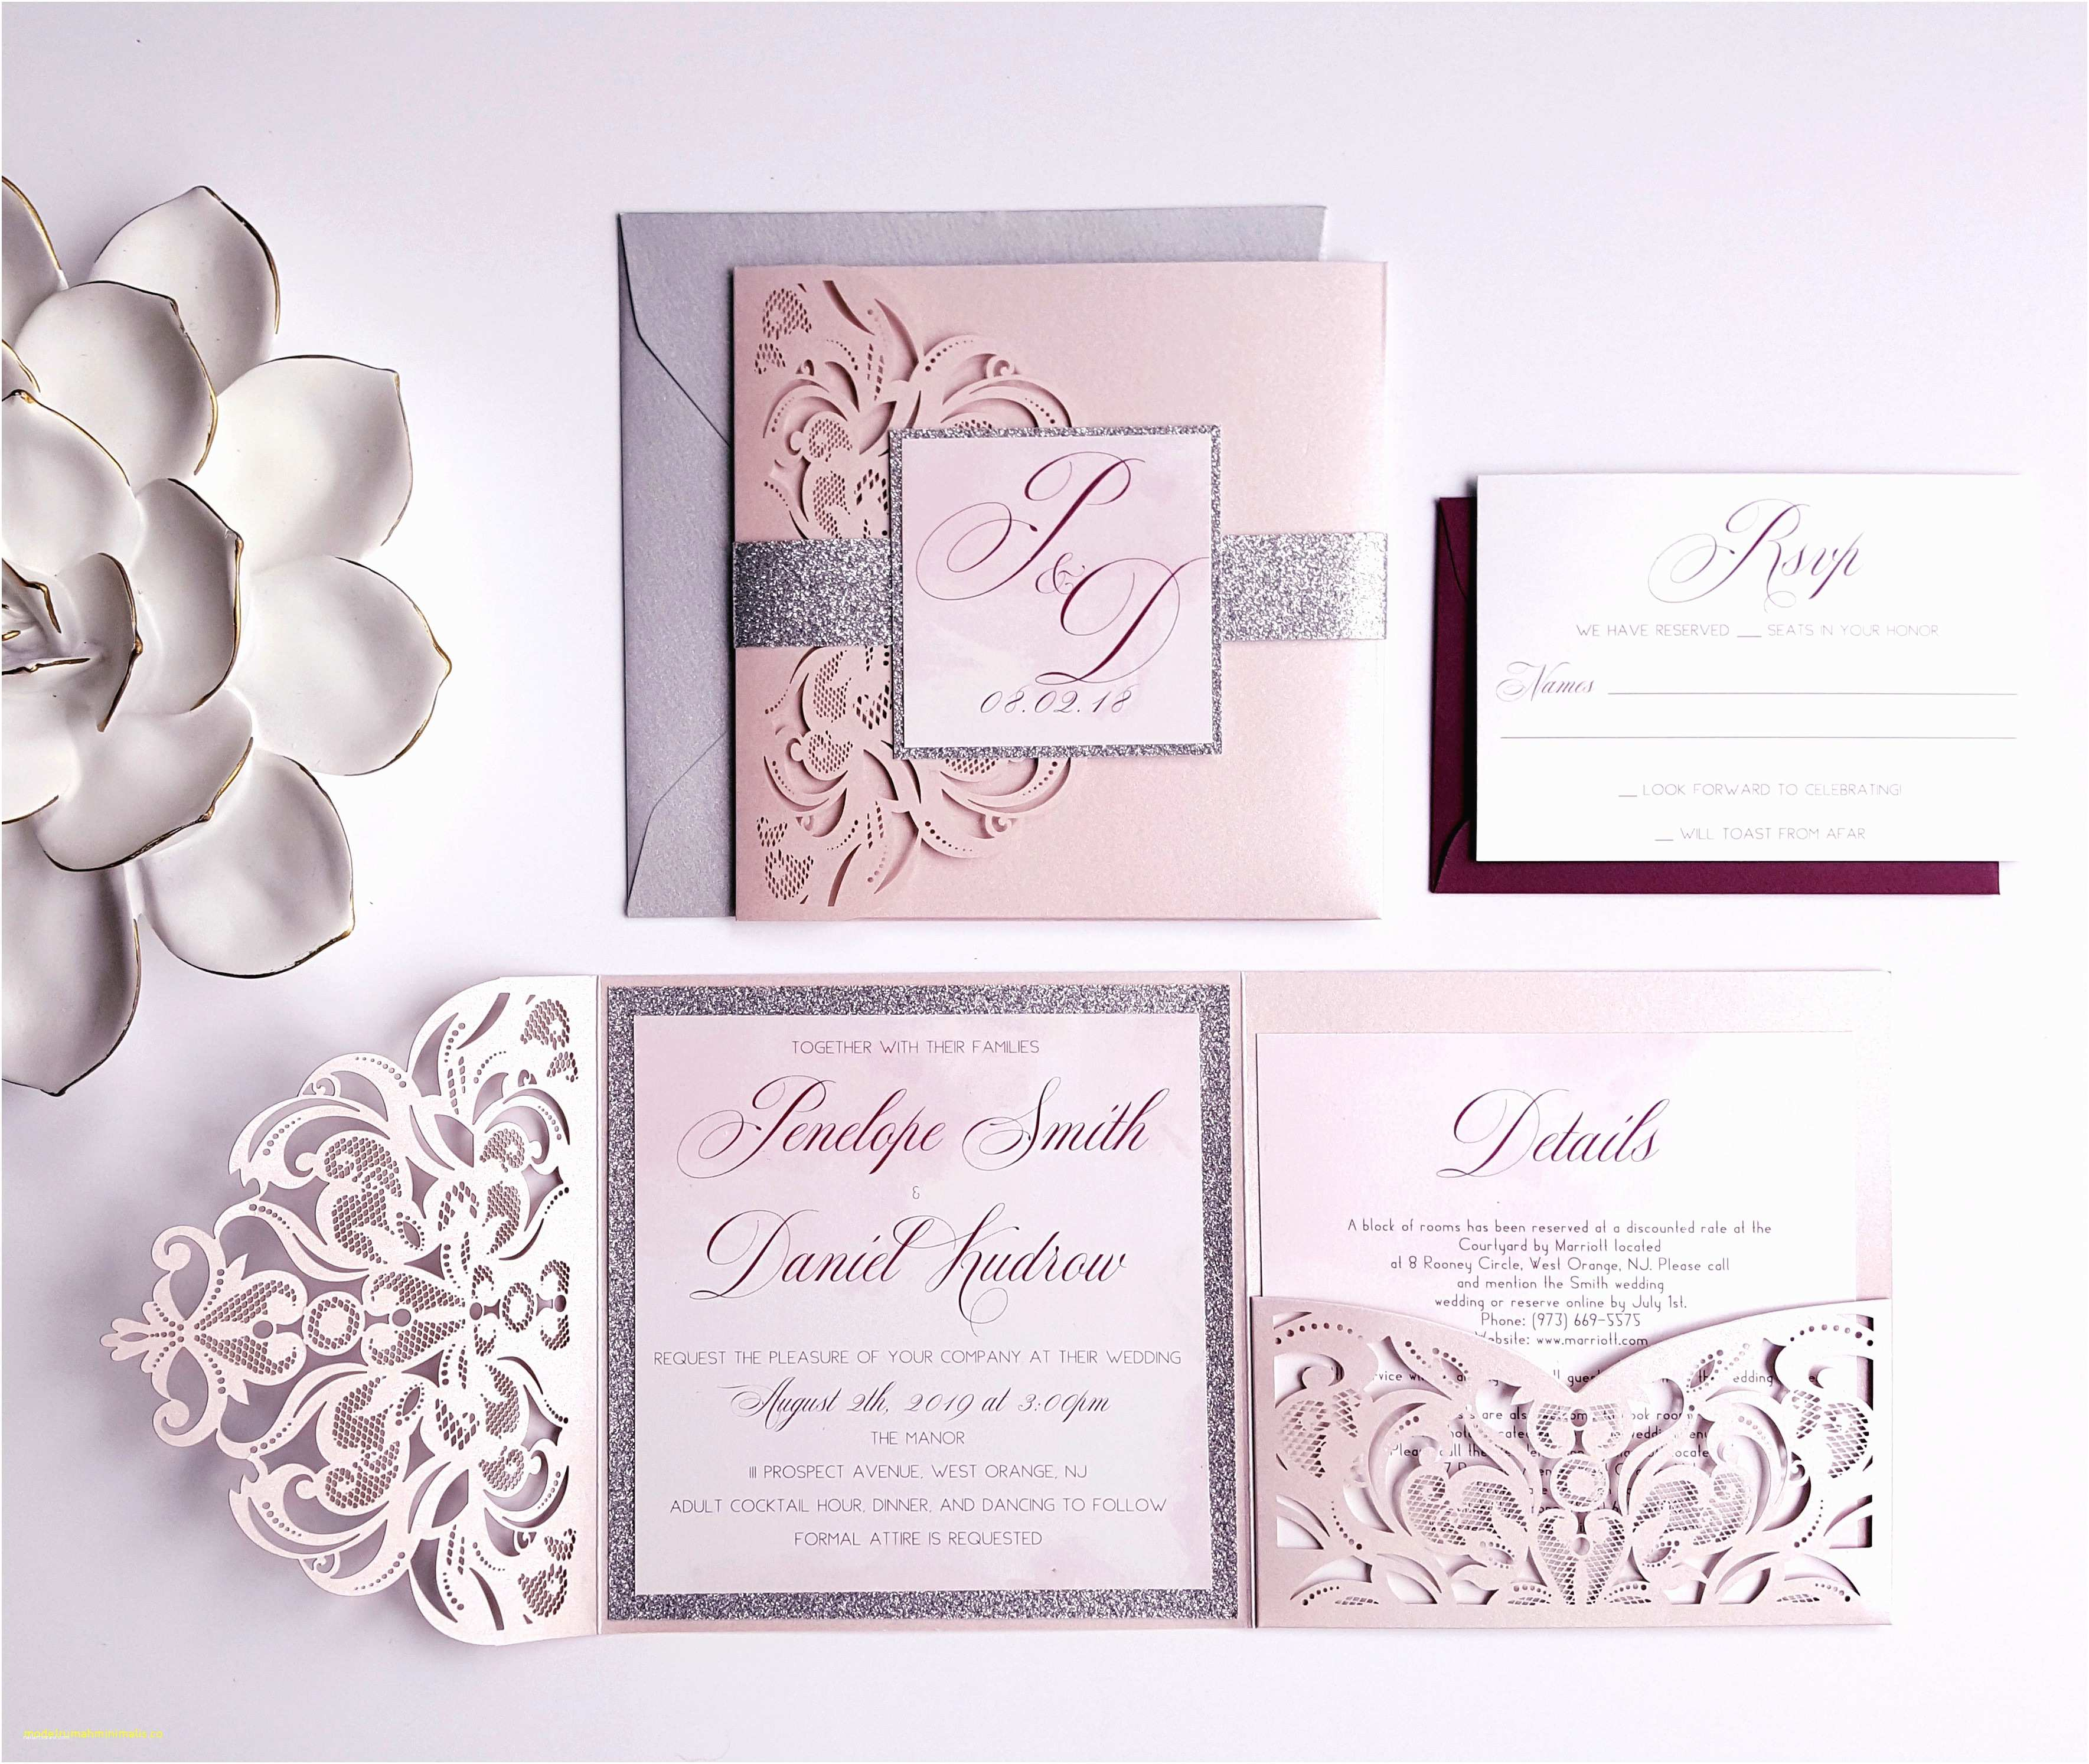 Unique Wedding Invitations Online top Result Cheap Wedding Invitations Line Unique Design